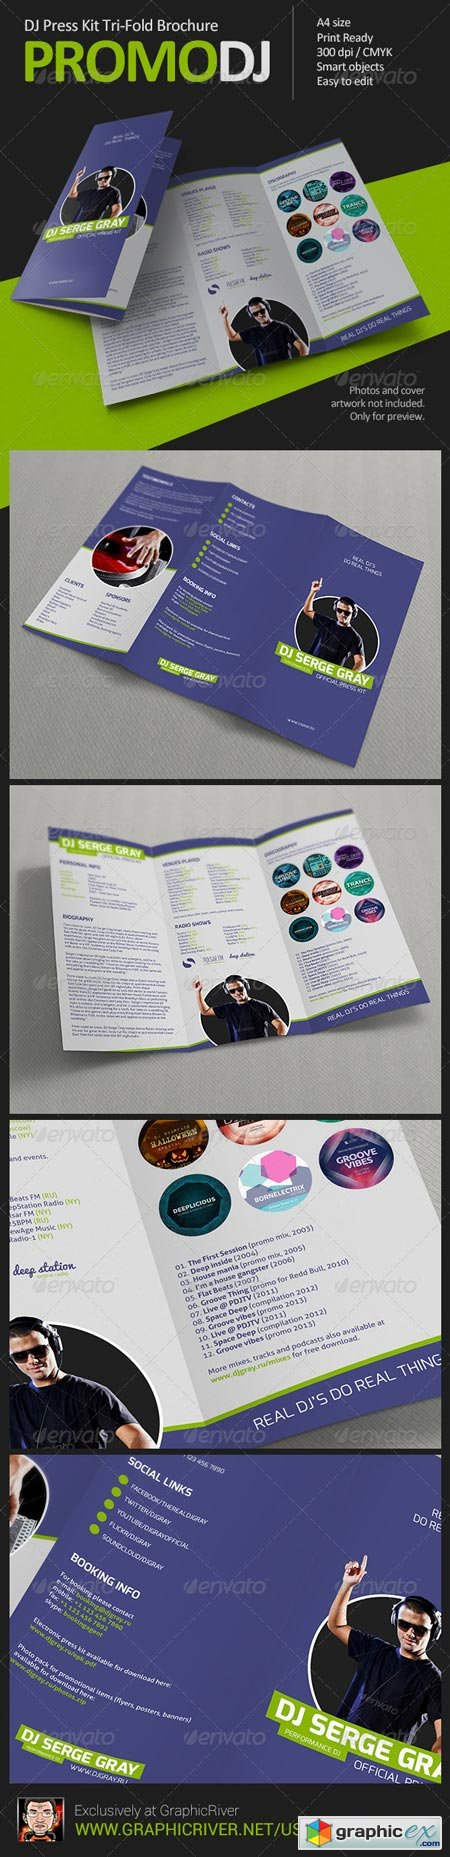 PromoDJ - DJ Press Kit Tri-Fold Brochure 6239966